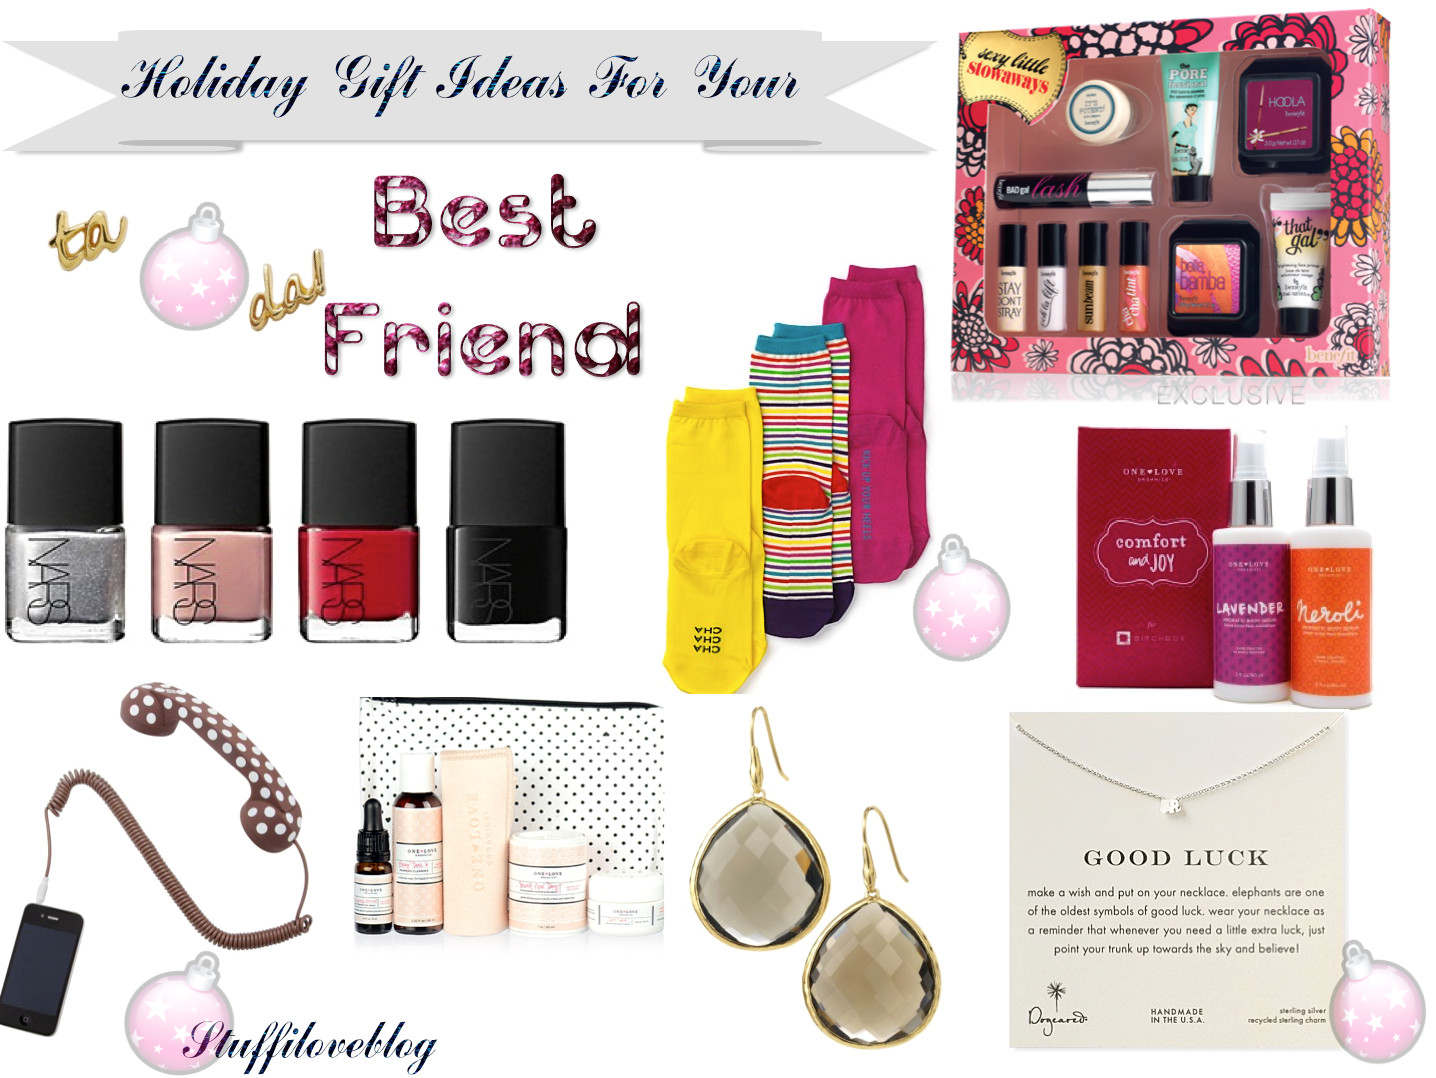 Best ideas about Good Gift Ideas For Friends . Save or Pin Gift Ideas For Your Best Friend Now.